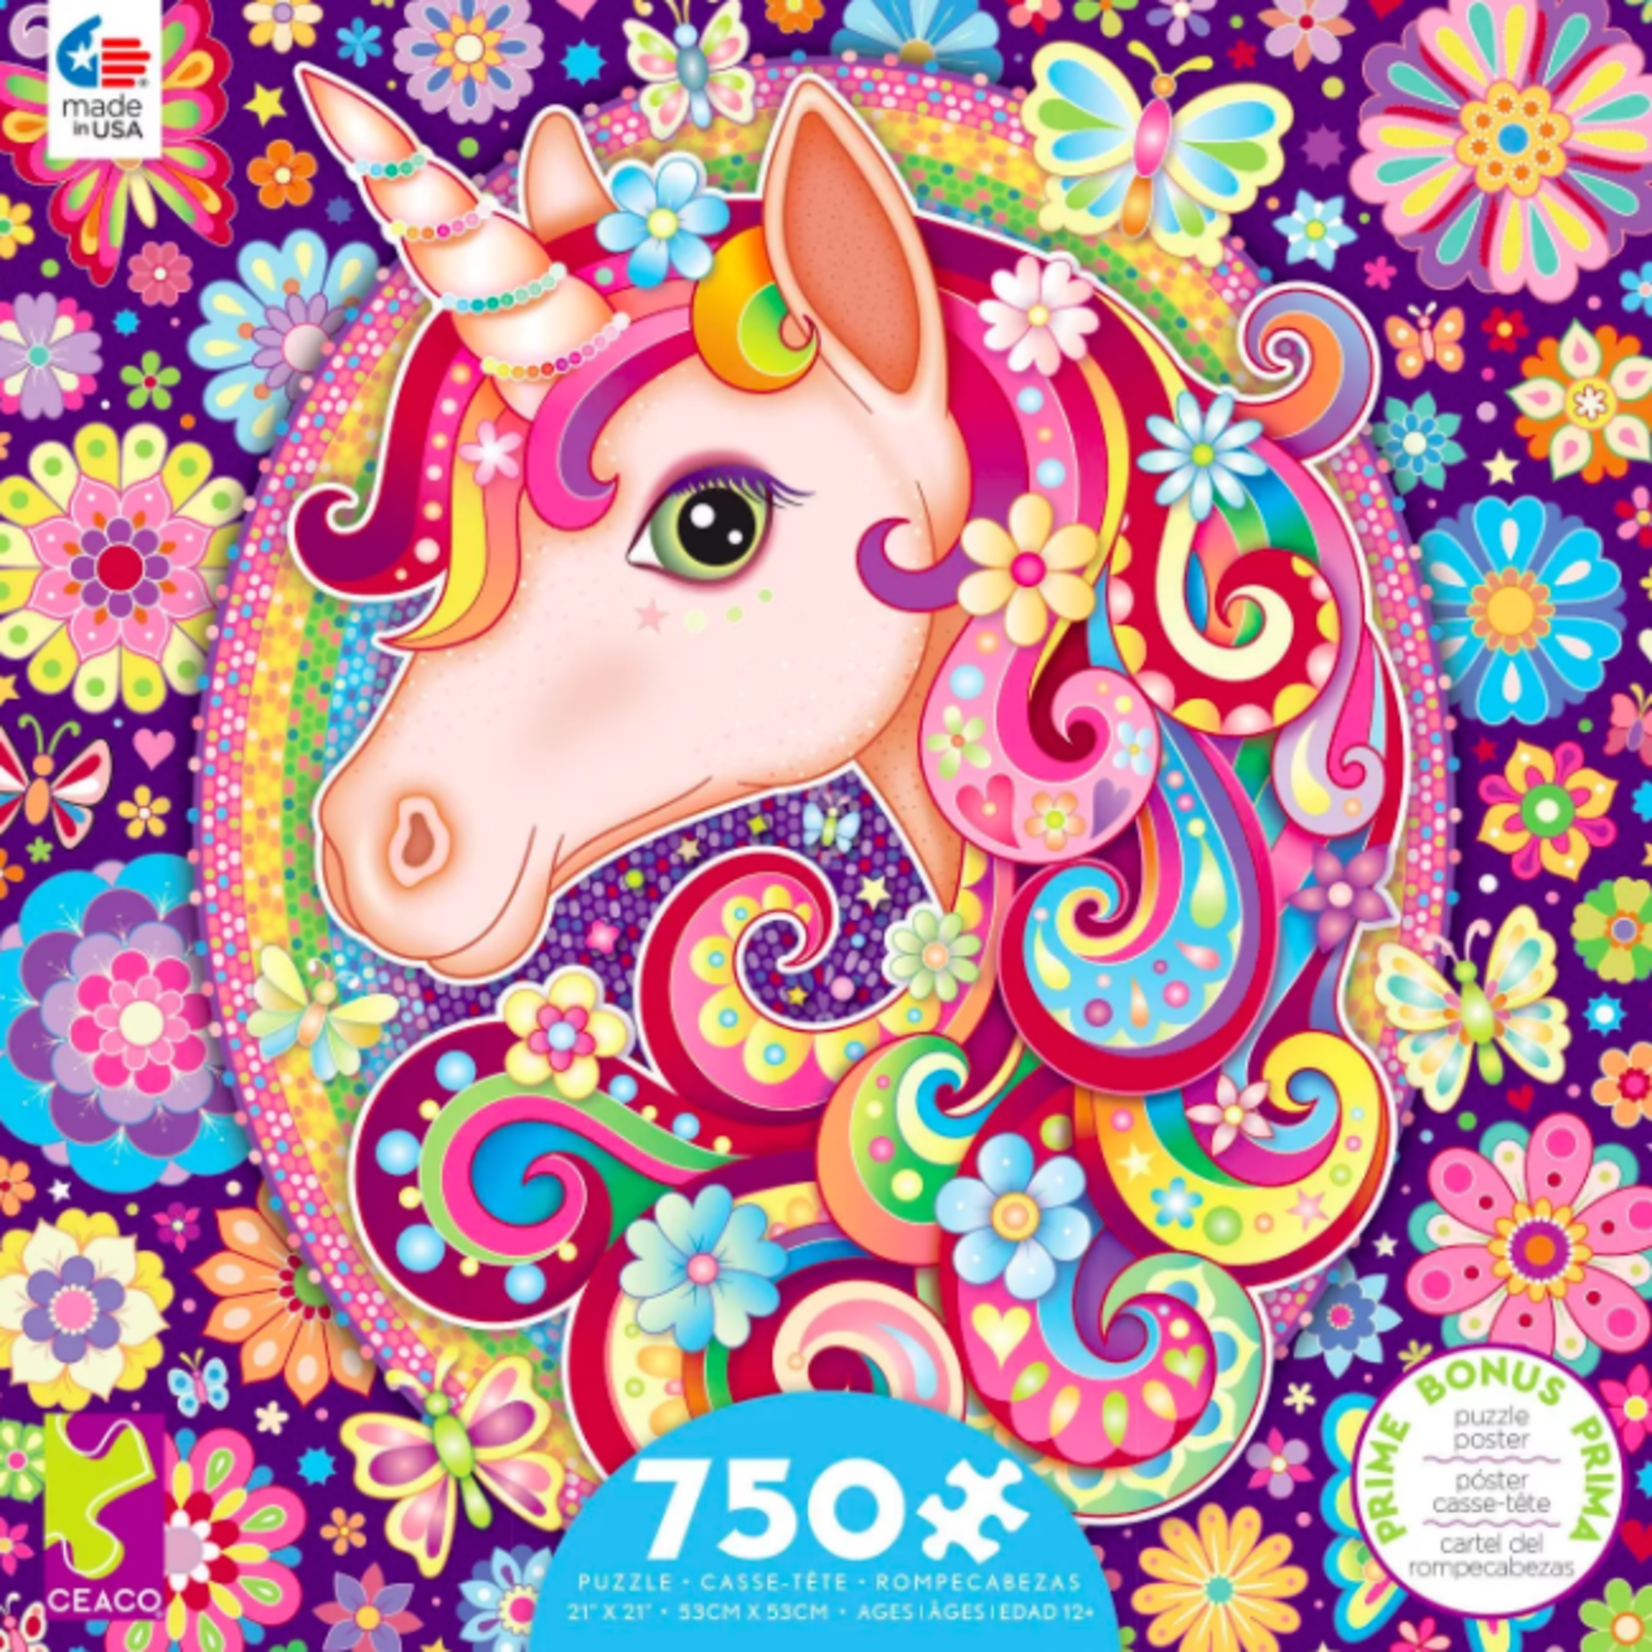 ceaco Ceaco - 750 Piece Puzzle: Groovy Animals - Unicorn